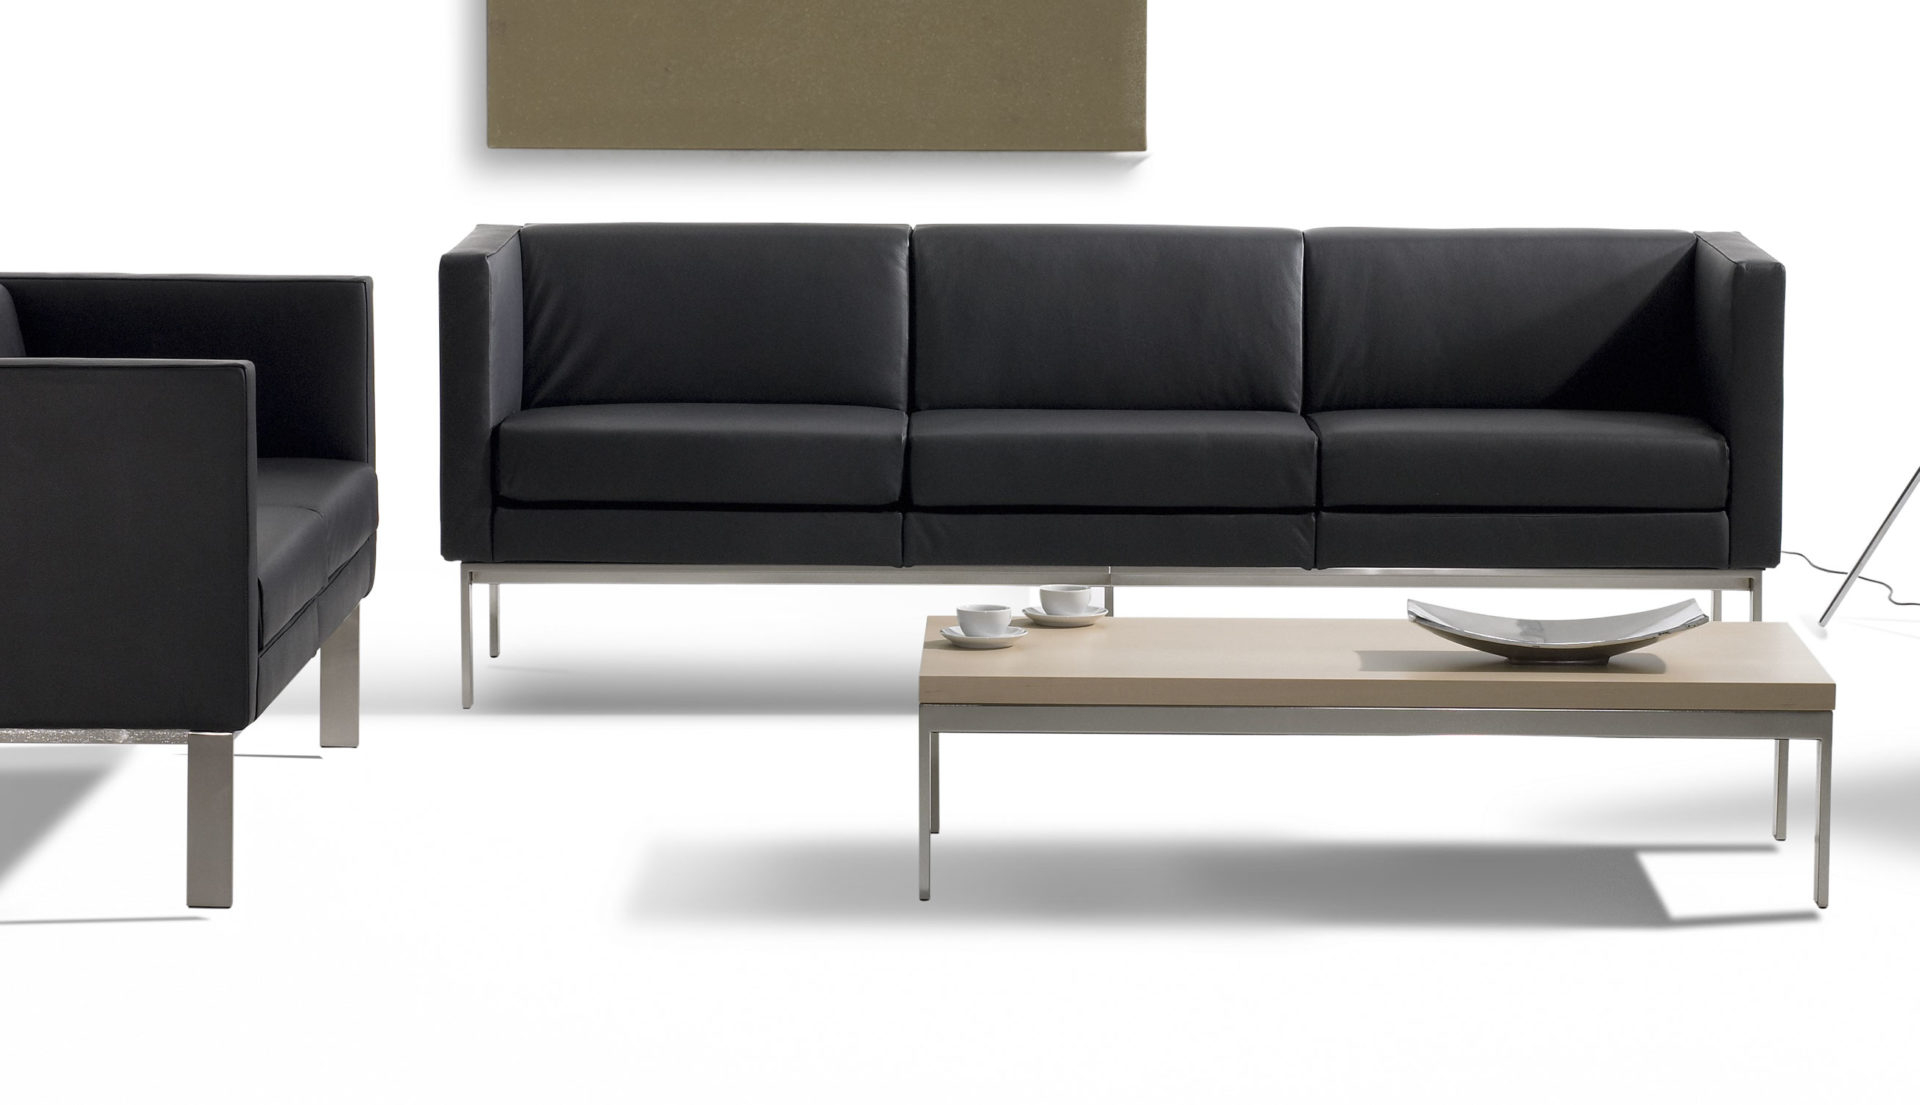 Sofas originales 4pde Bos1964 Office Coffee or Ocasional Tables for sofas or